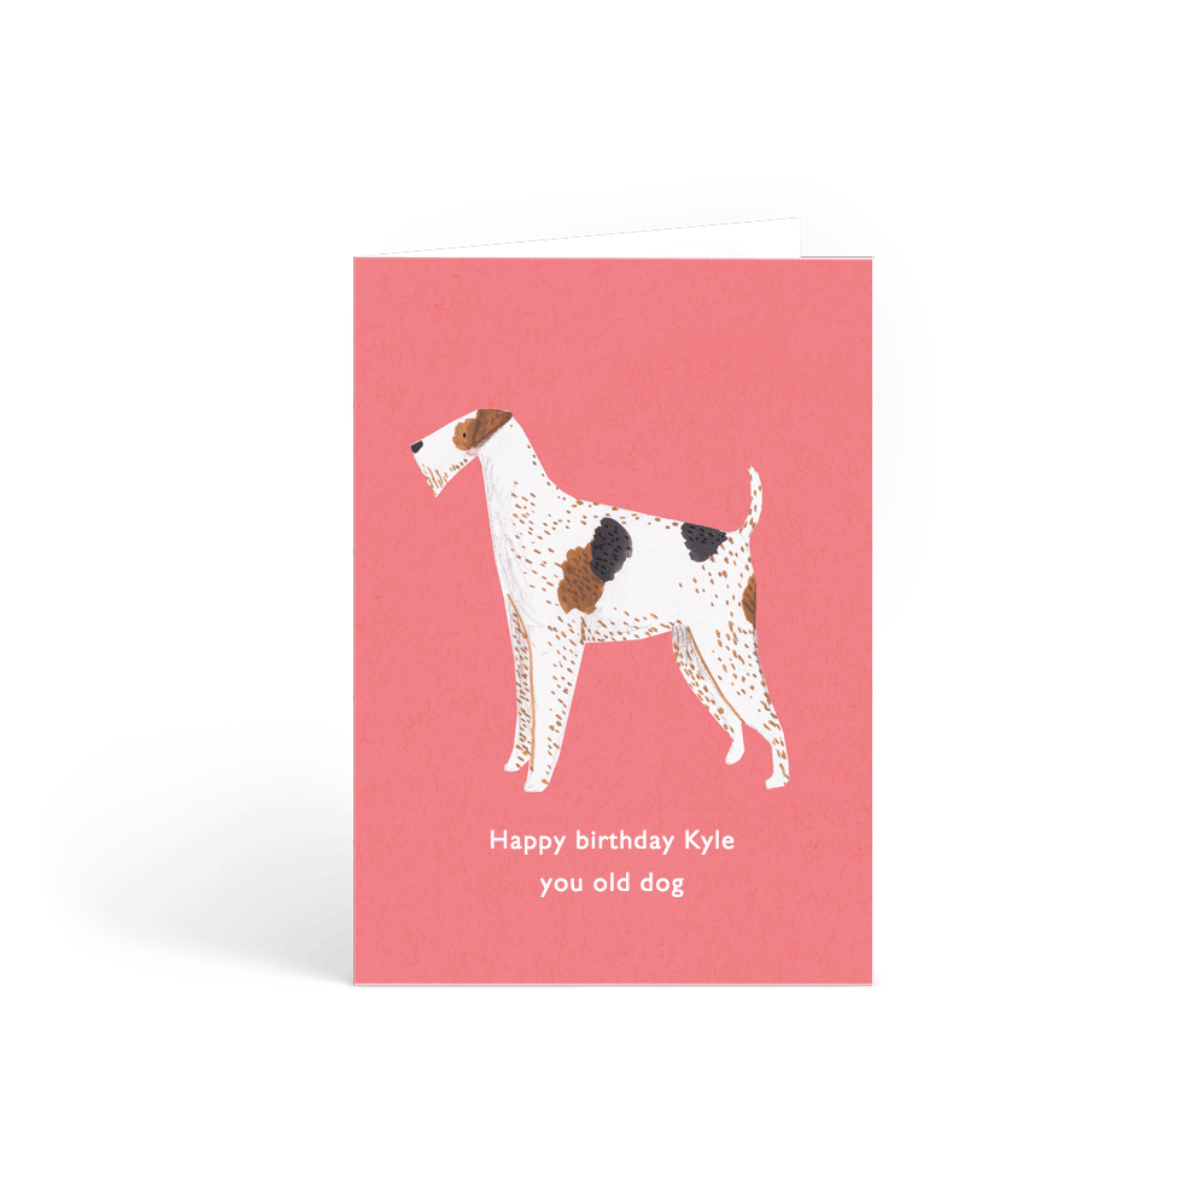 Https%3a%2f%2fwww.papier.com%2fproduct image%2f3125%2f2%2ffox terrier 786 front 1453910662.png?ixlib=rb 1.1